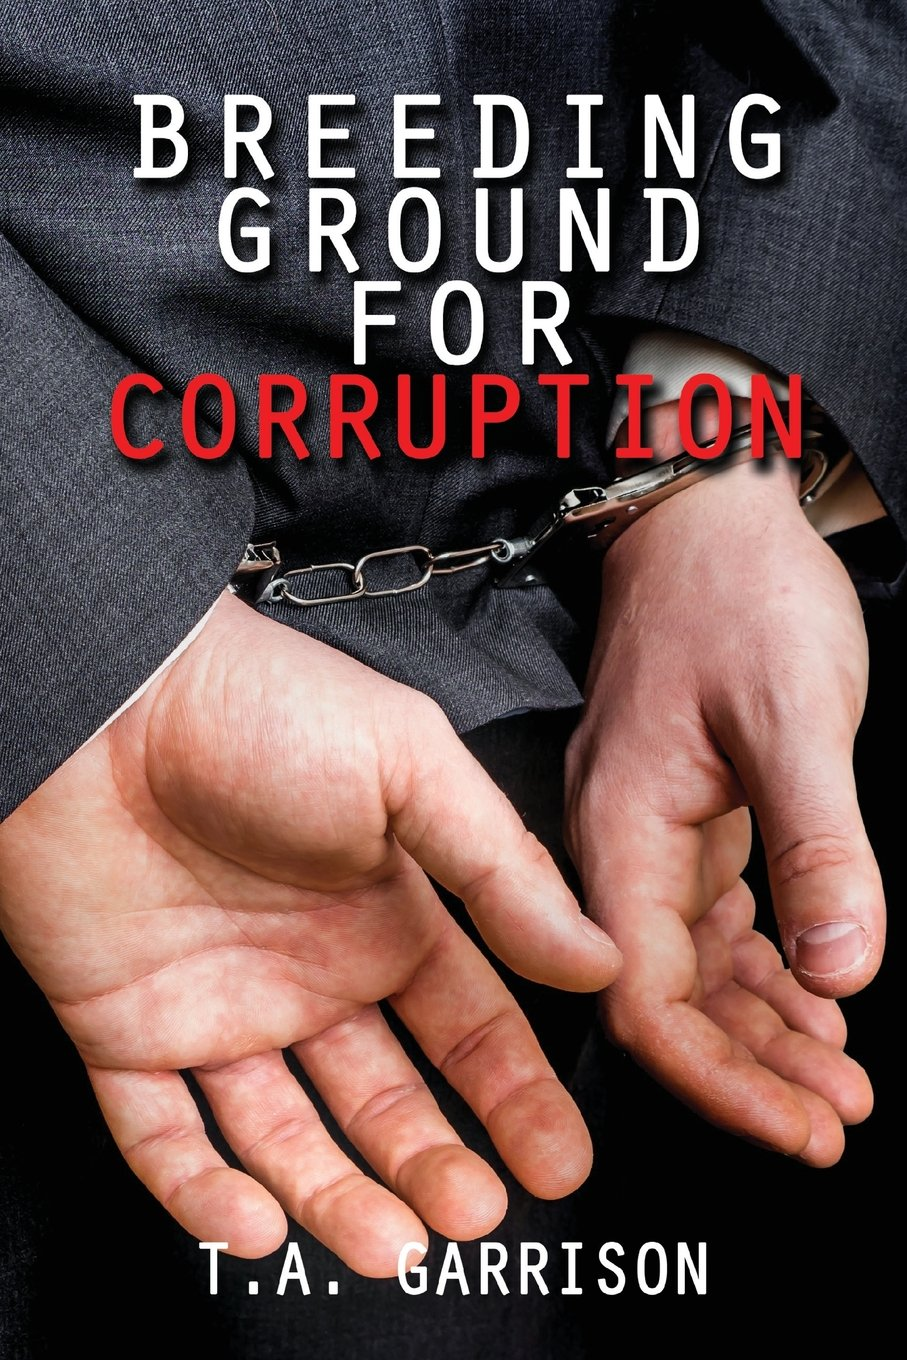 Breeding Ground for Corruption: Revised Edition Paperback – August 11, 2017 Garrison T a Zeta Publishing Inc 1947191209 LAW / Research